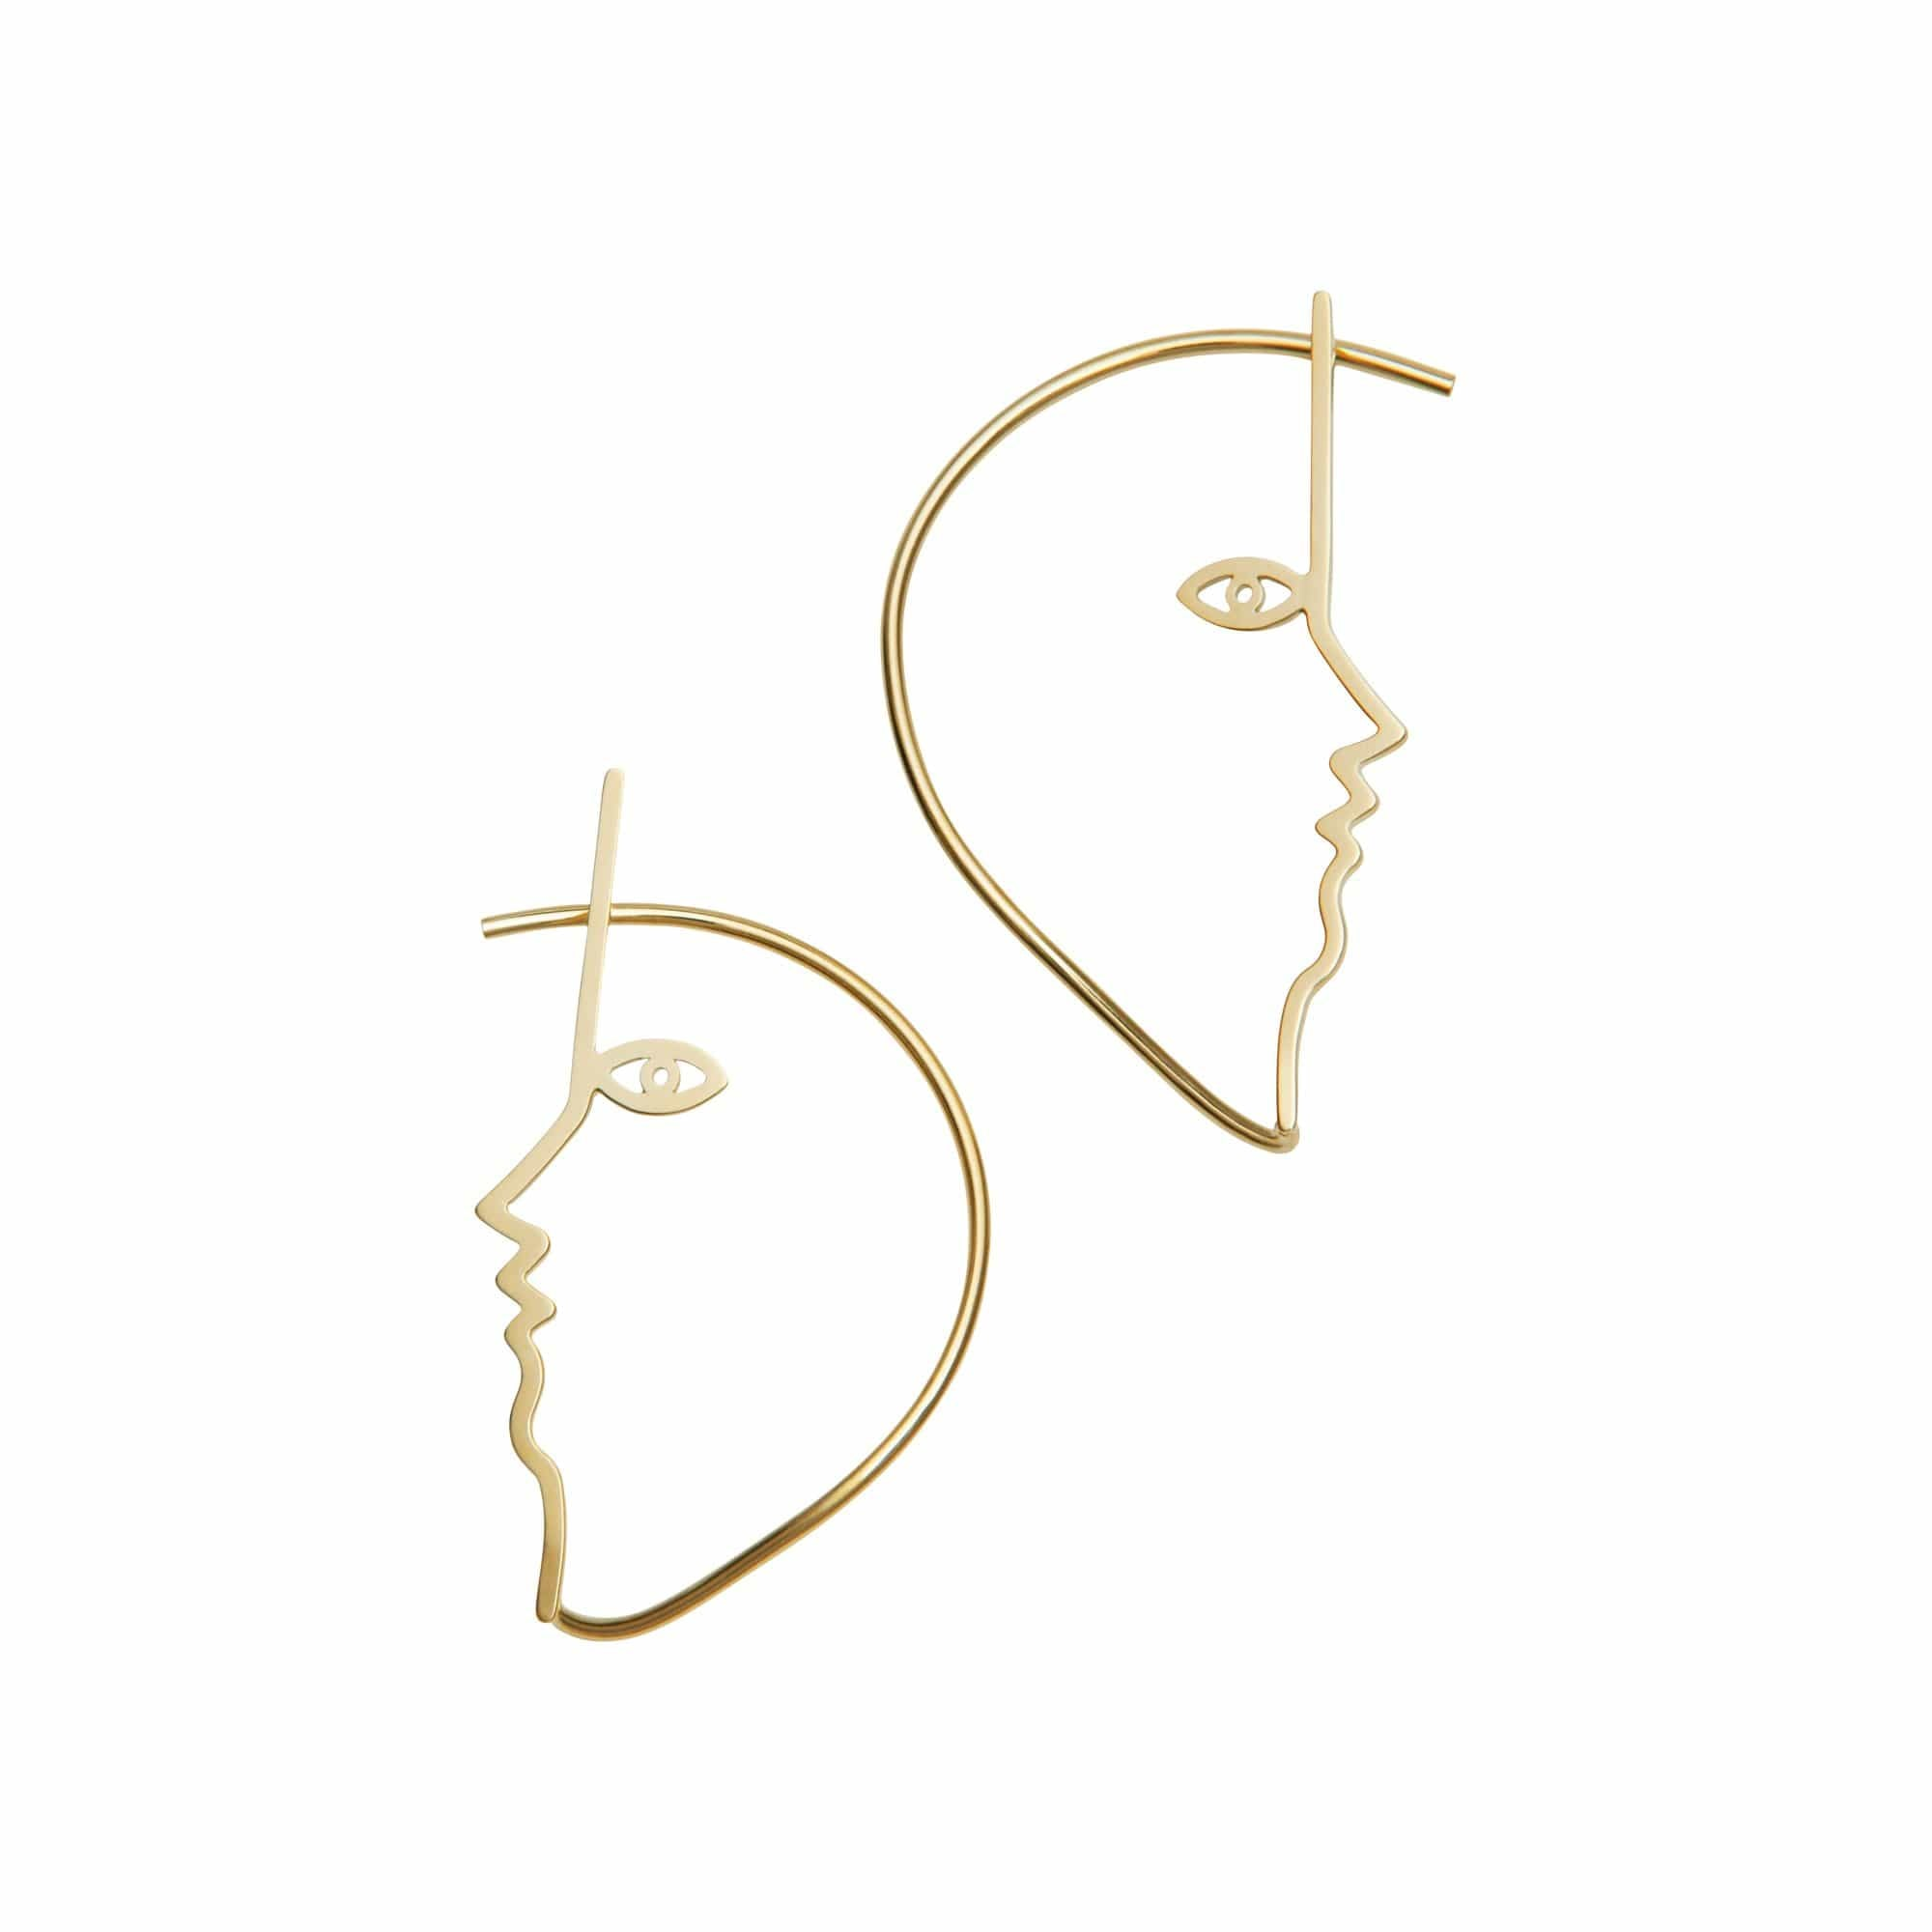 Mara Paris Earrings Dina Ear Cuff